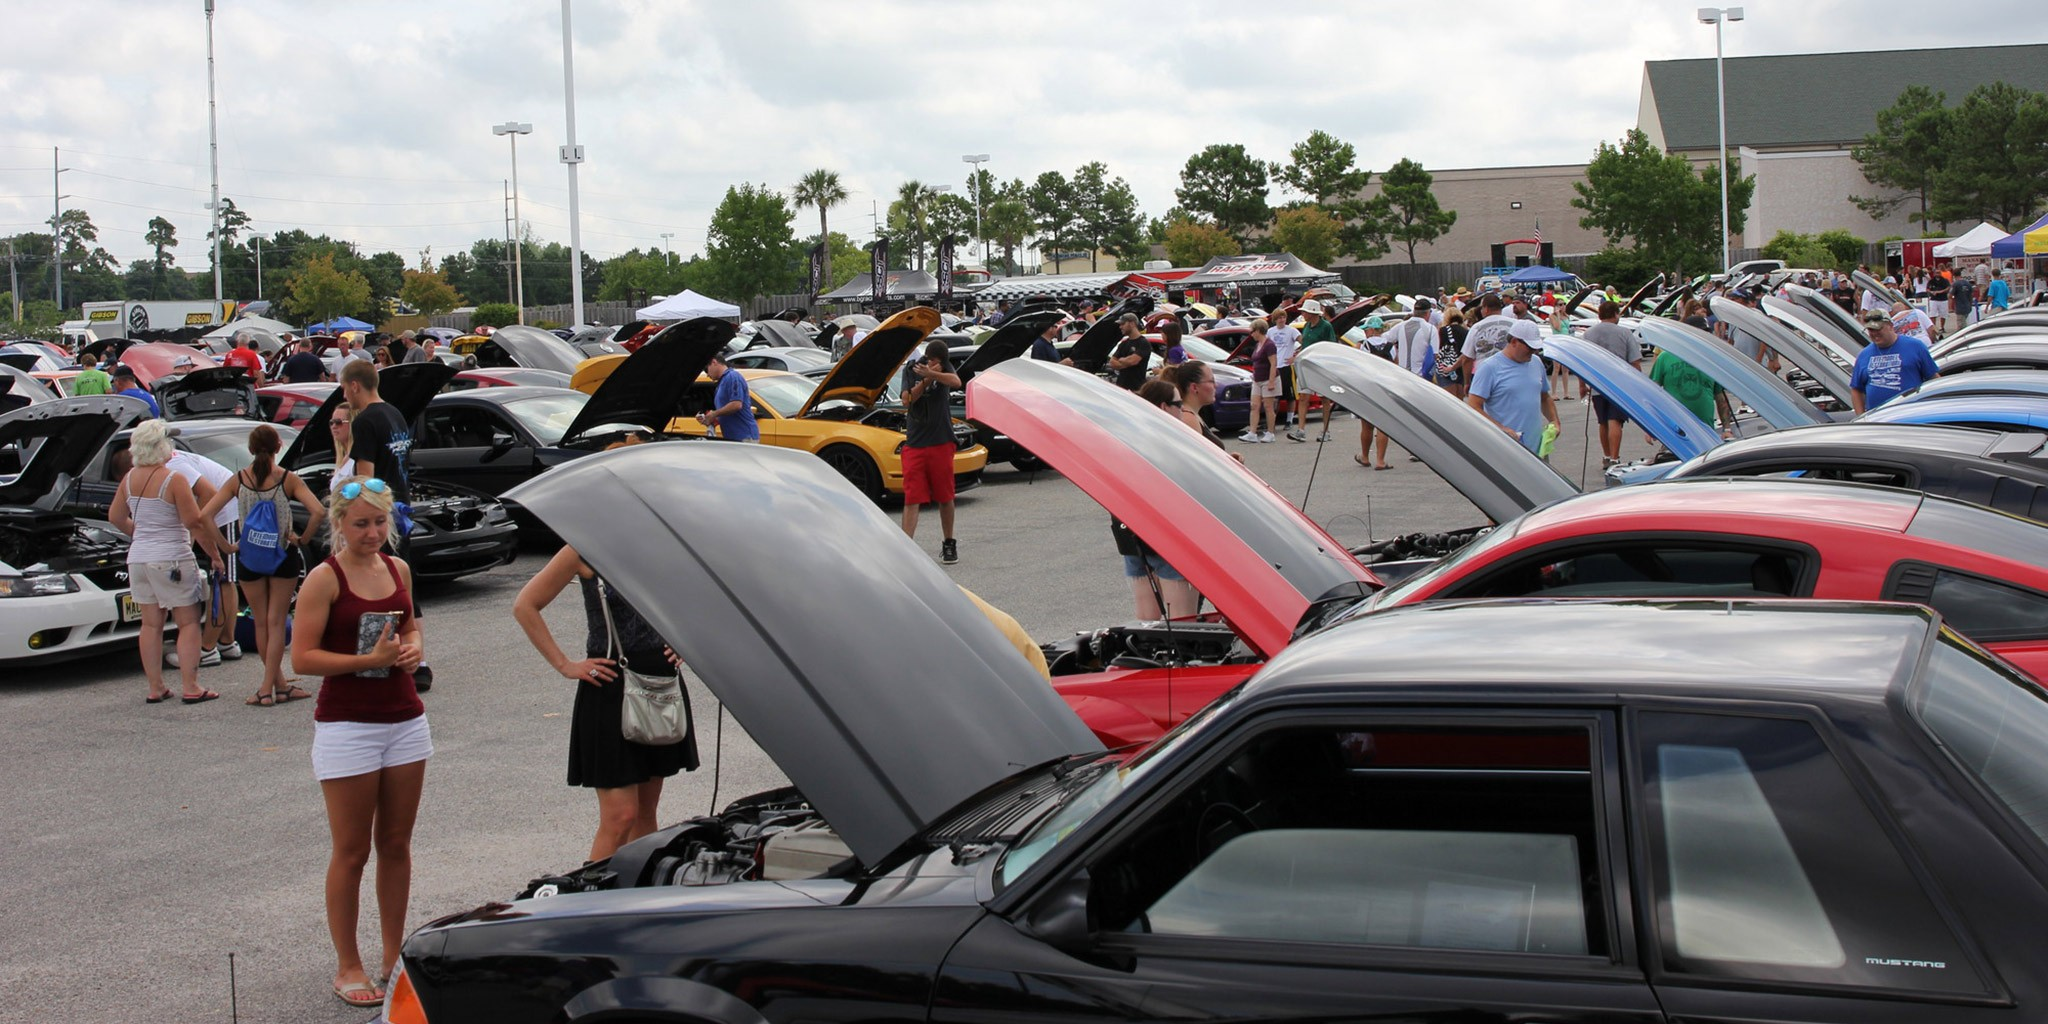 Mustang Week In Myrtle Beach Sc Hotels Amp Events